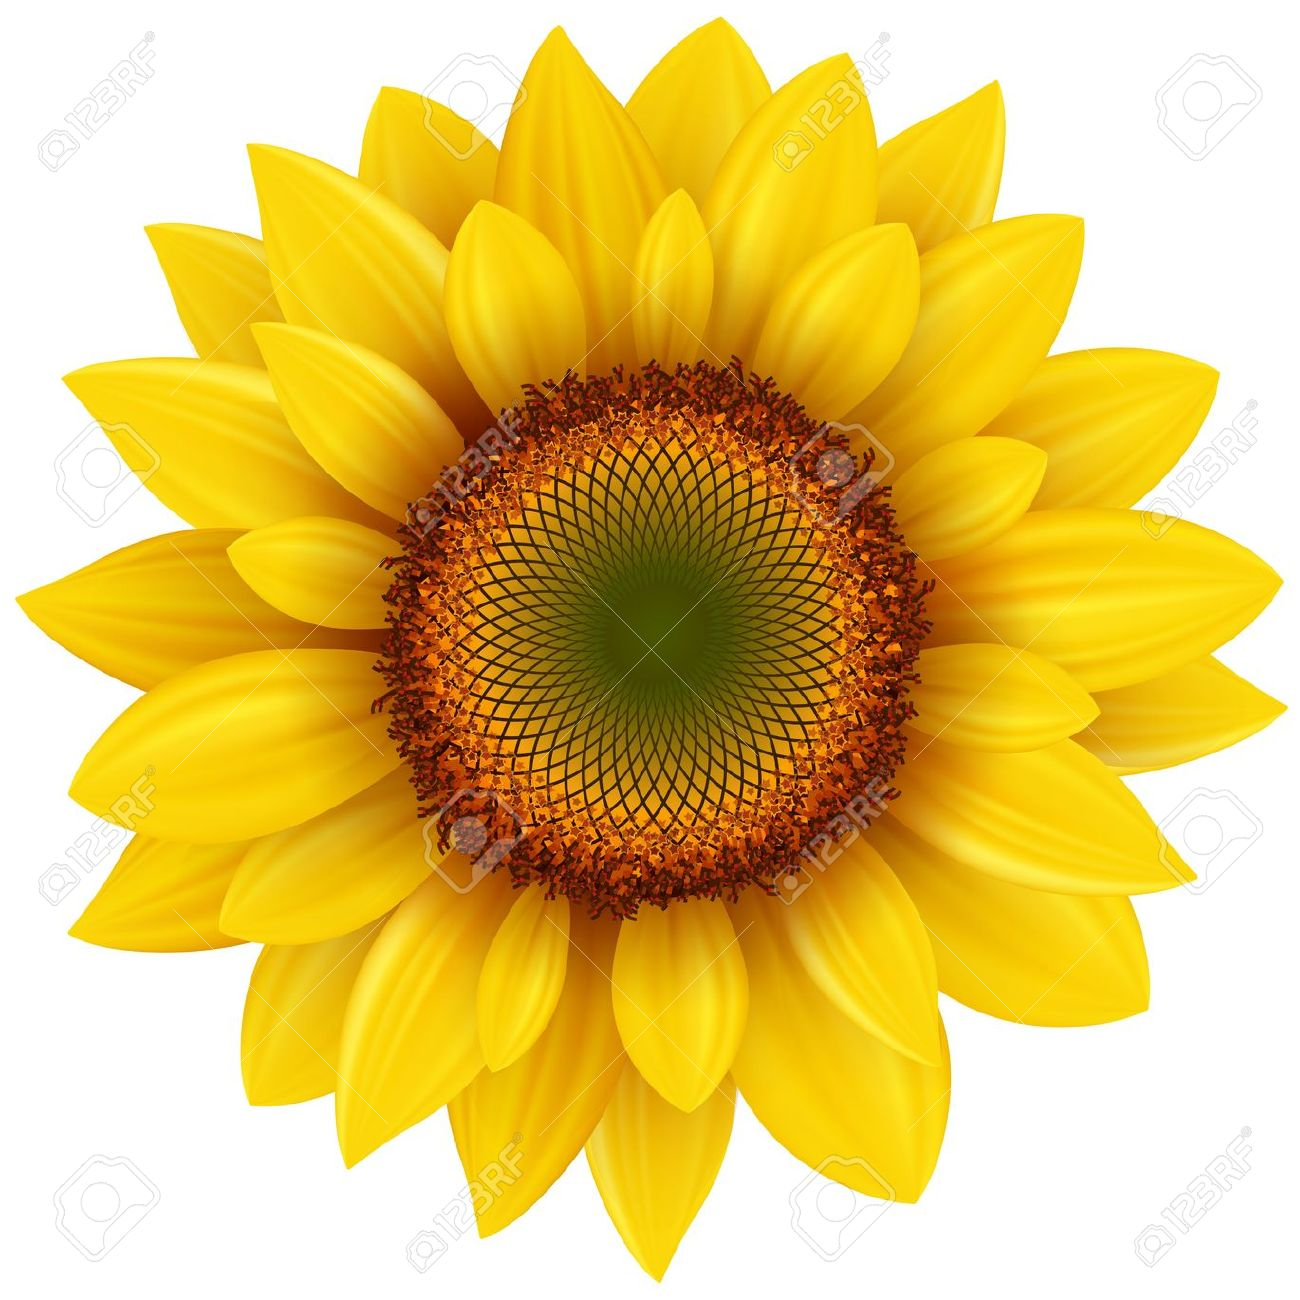 Girasoles clipart 20 free Cliparts | Download images on ...